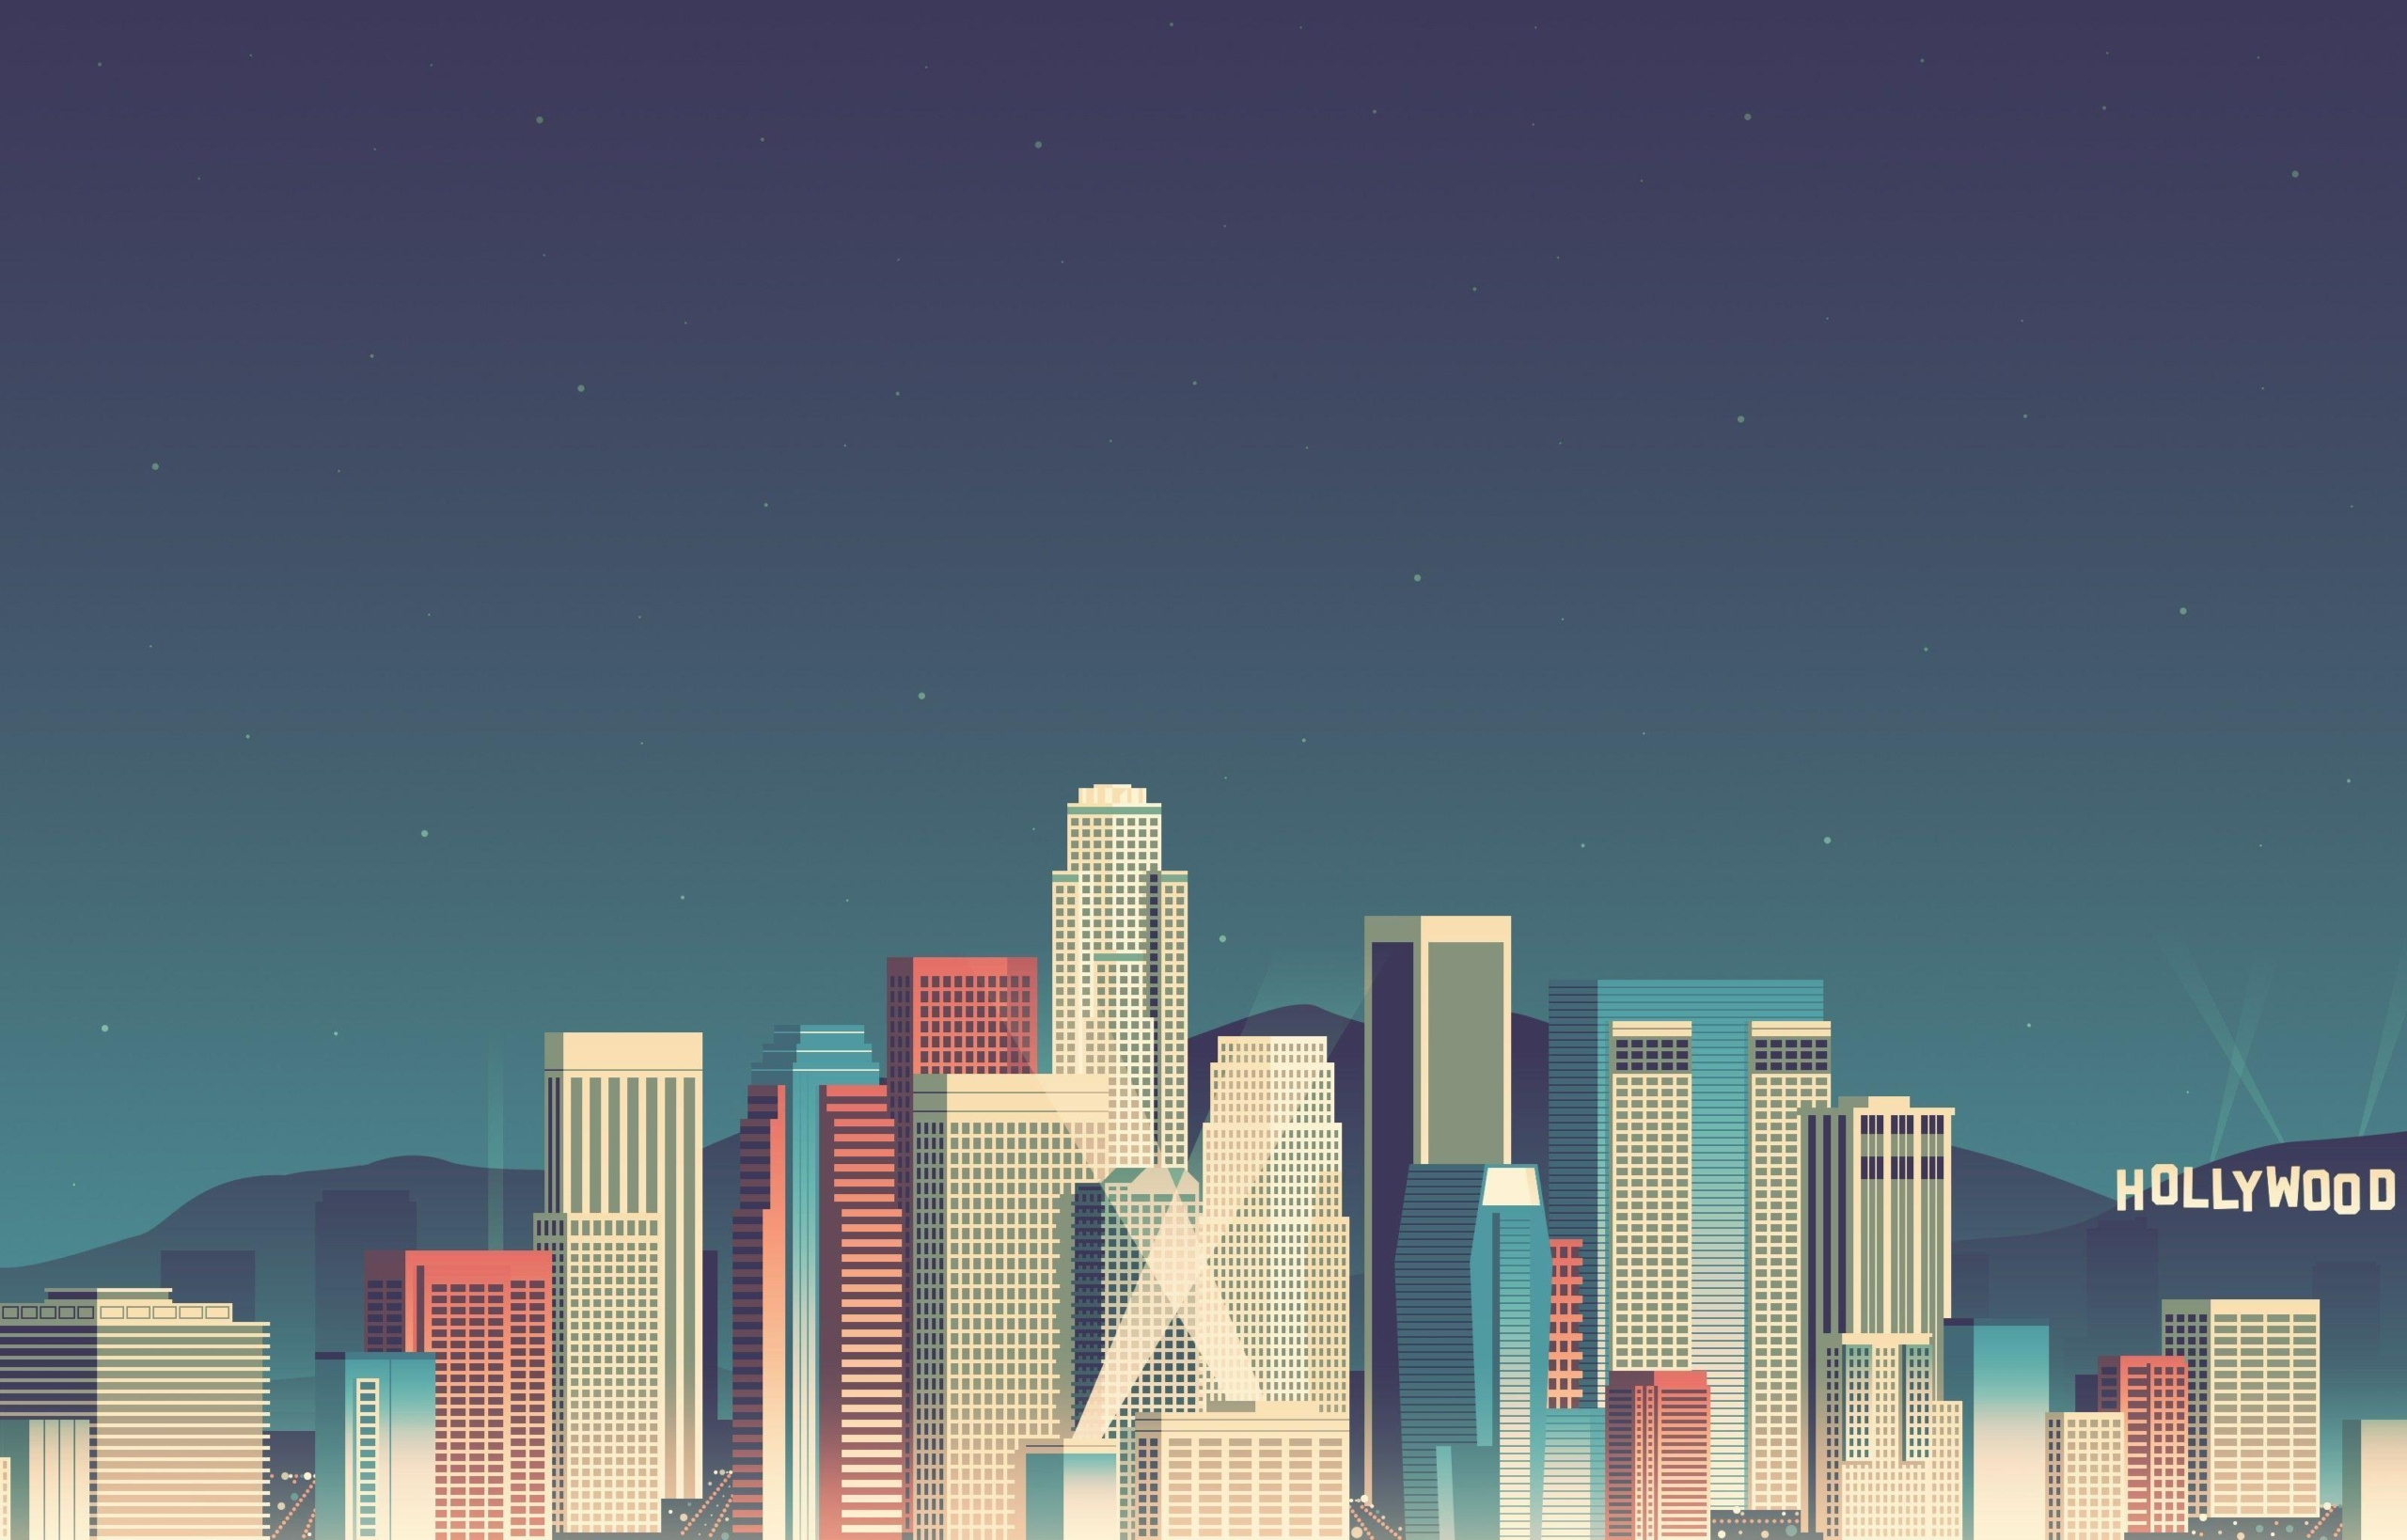 8 Bit Wallpaper design Ideas You Can Use on Your Computer